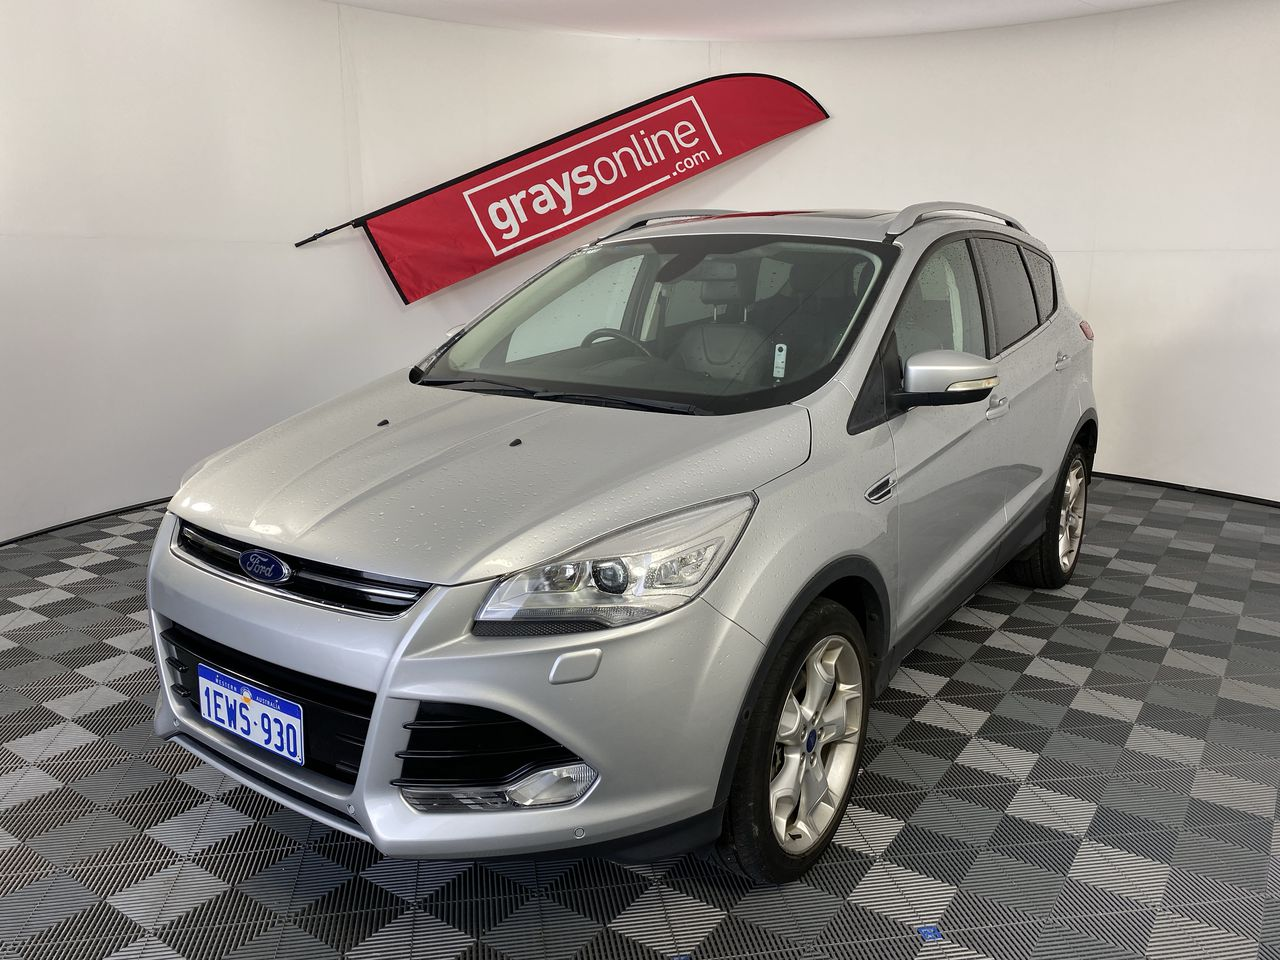 2013 Ford Kuga AWD Titanium TF Turbo Diesel Automatic Wagon(WOVR-Inspected)